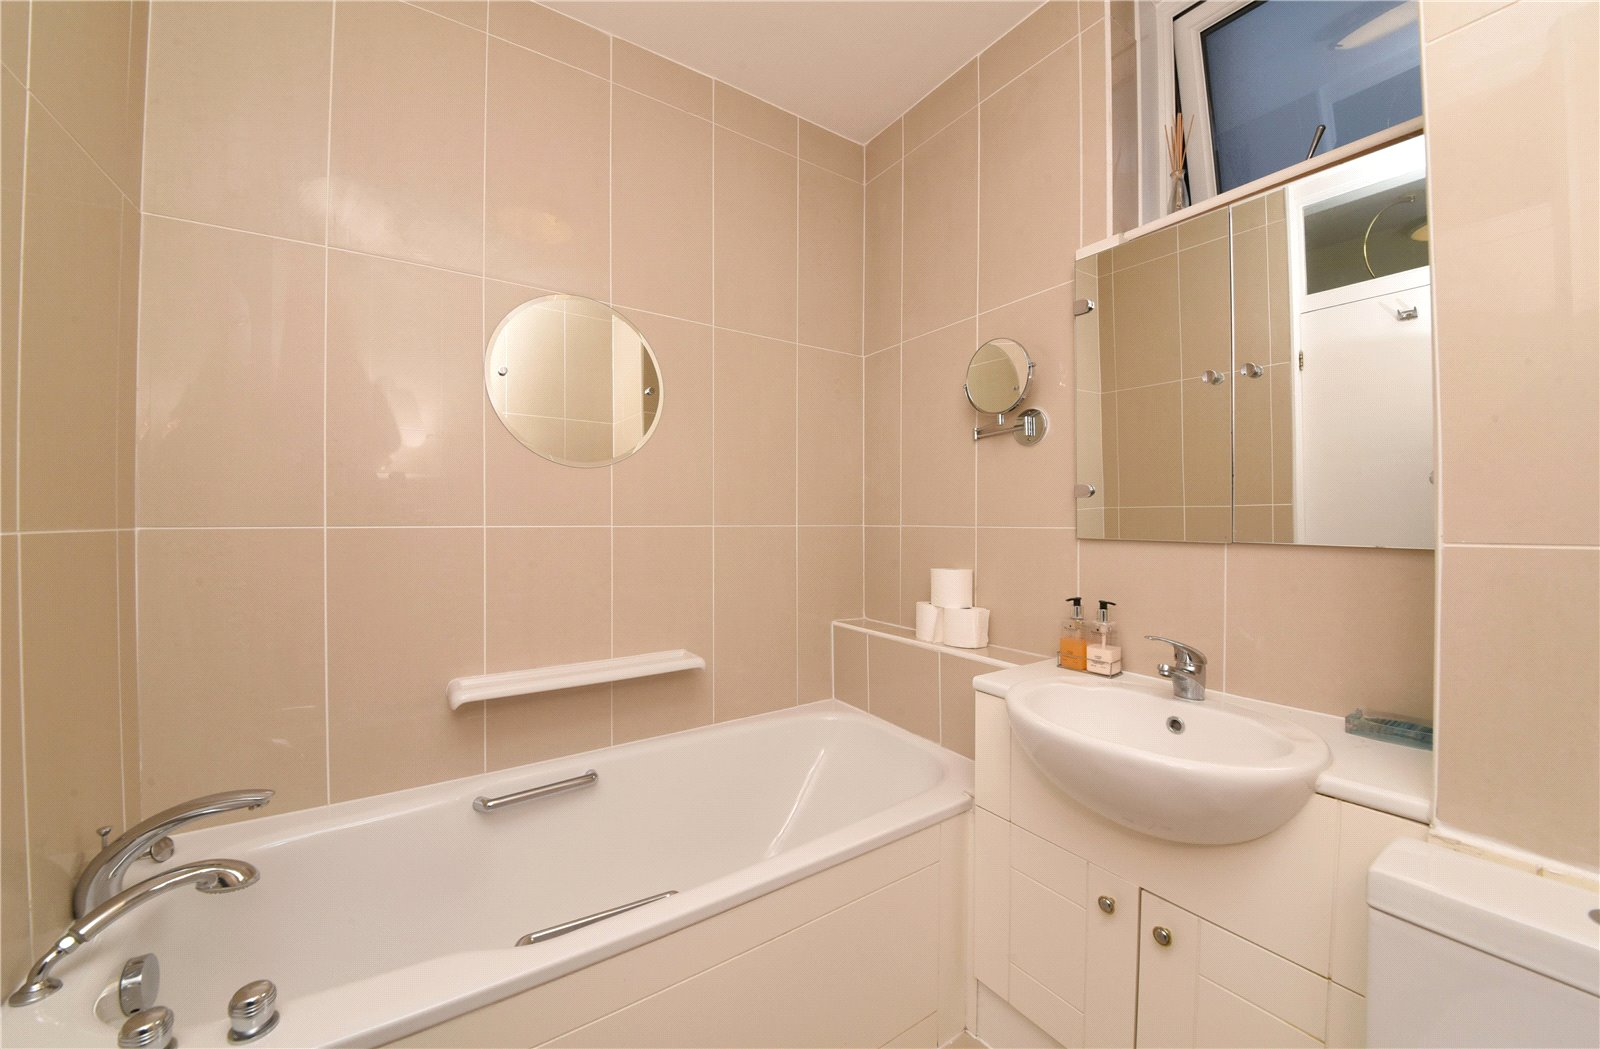 2 bed apartment for sale in Hendon, NW4 1RB 3